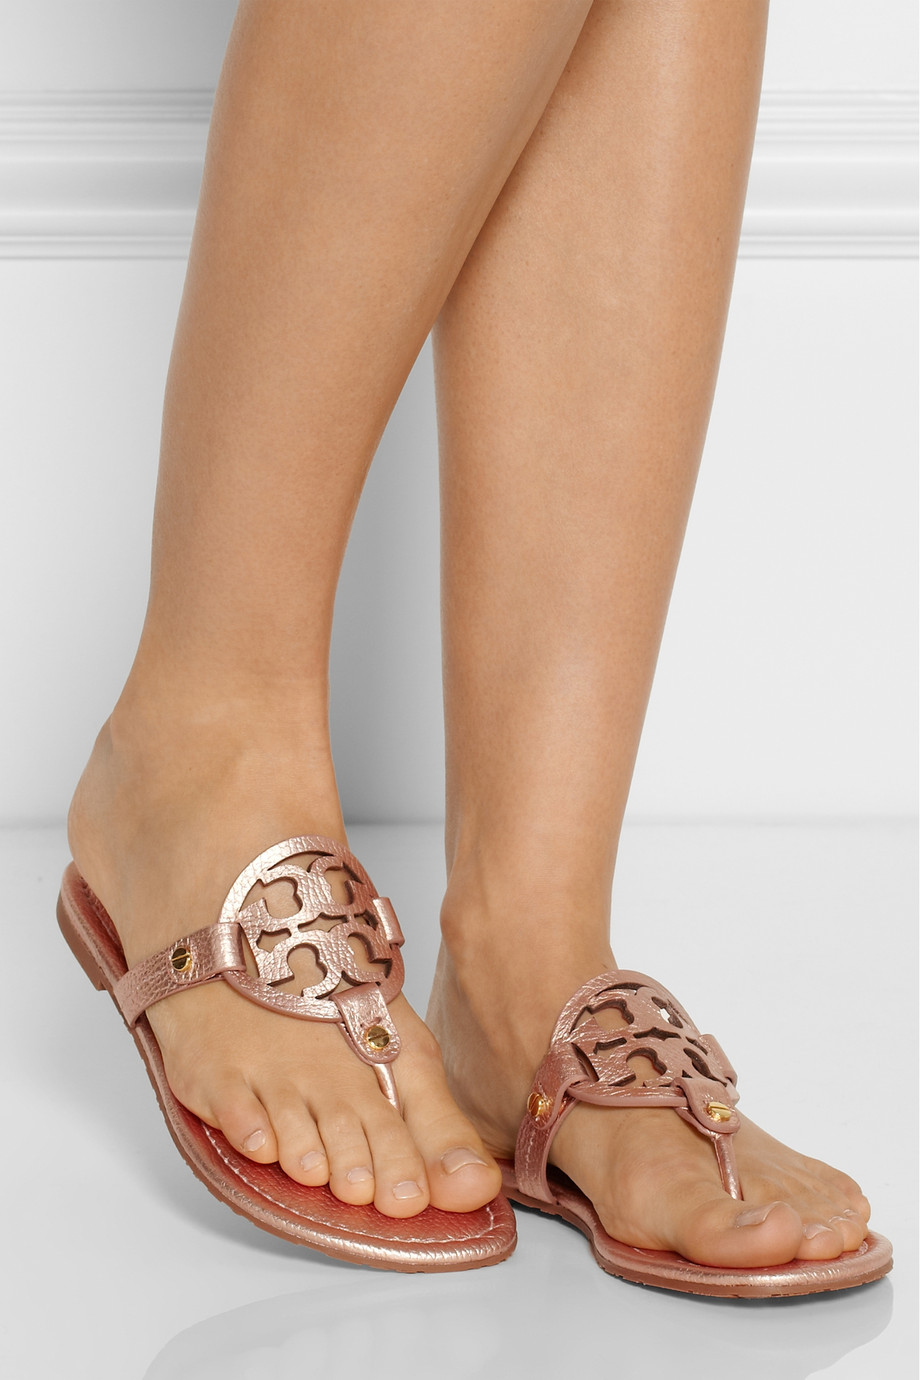 9c4d5ef259d7f8 Lyst - Tory Burch Miller Metallic Leather Sandals in Pink